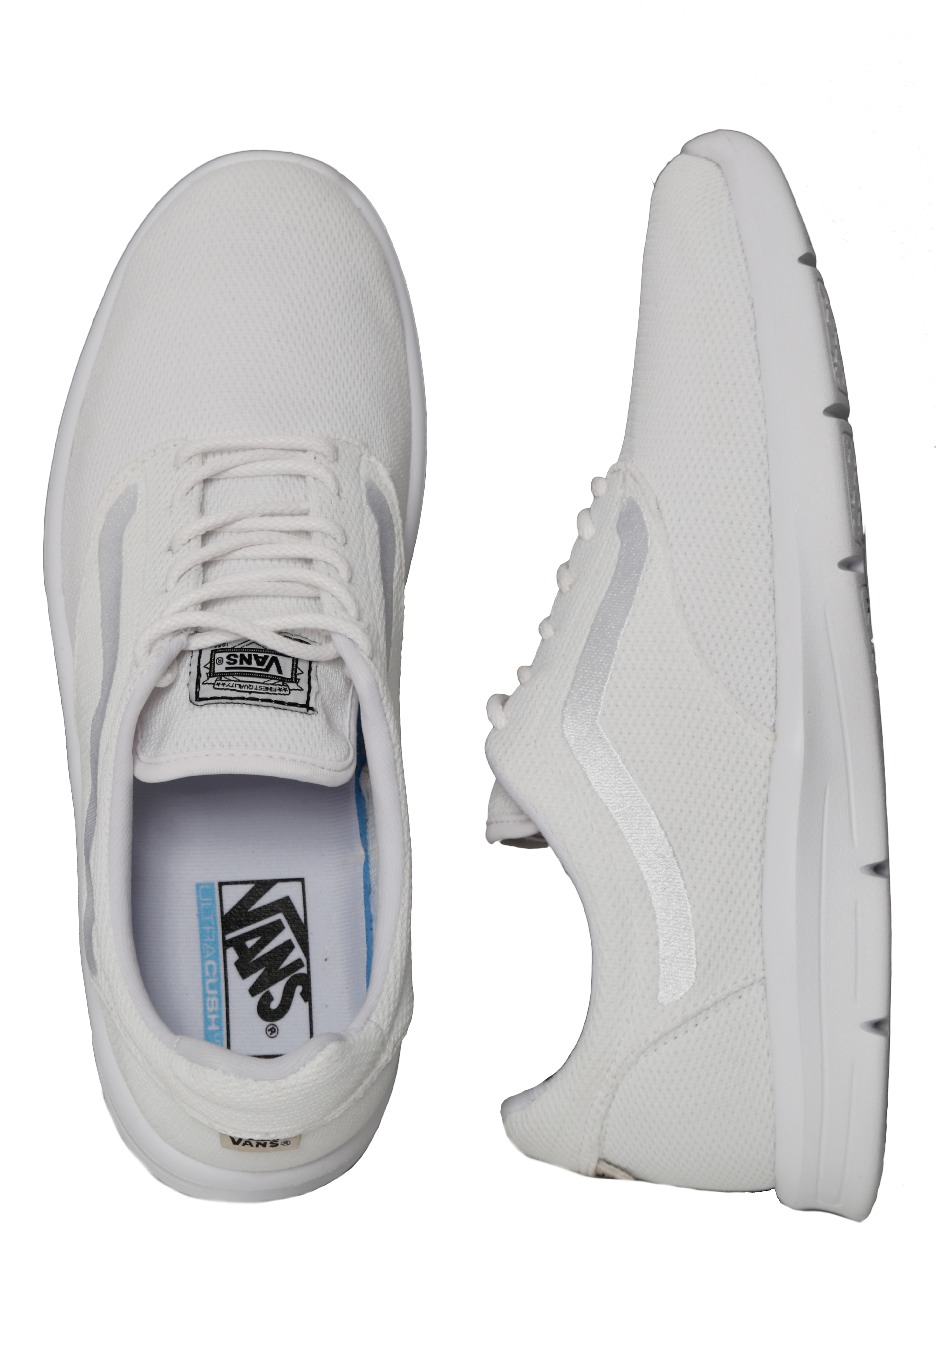 c24cb6466f8a03 Vans - Iso 1.5 + Mesh True White - Shoes - Impericon.com Worldwide